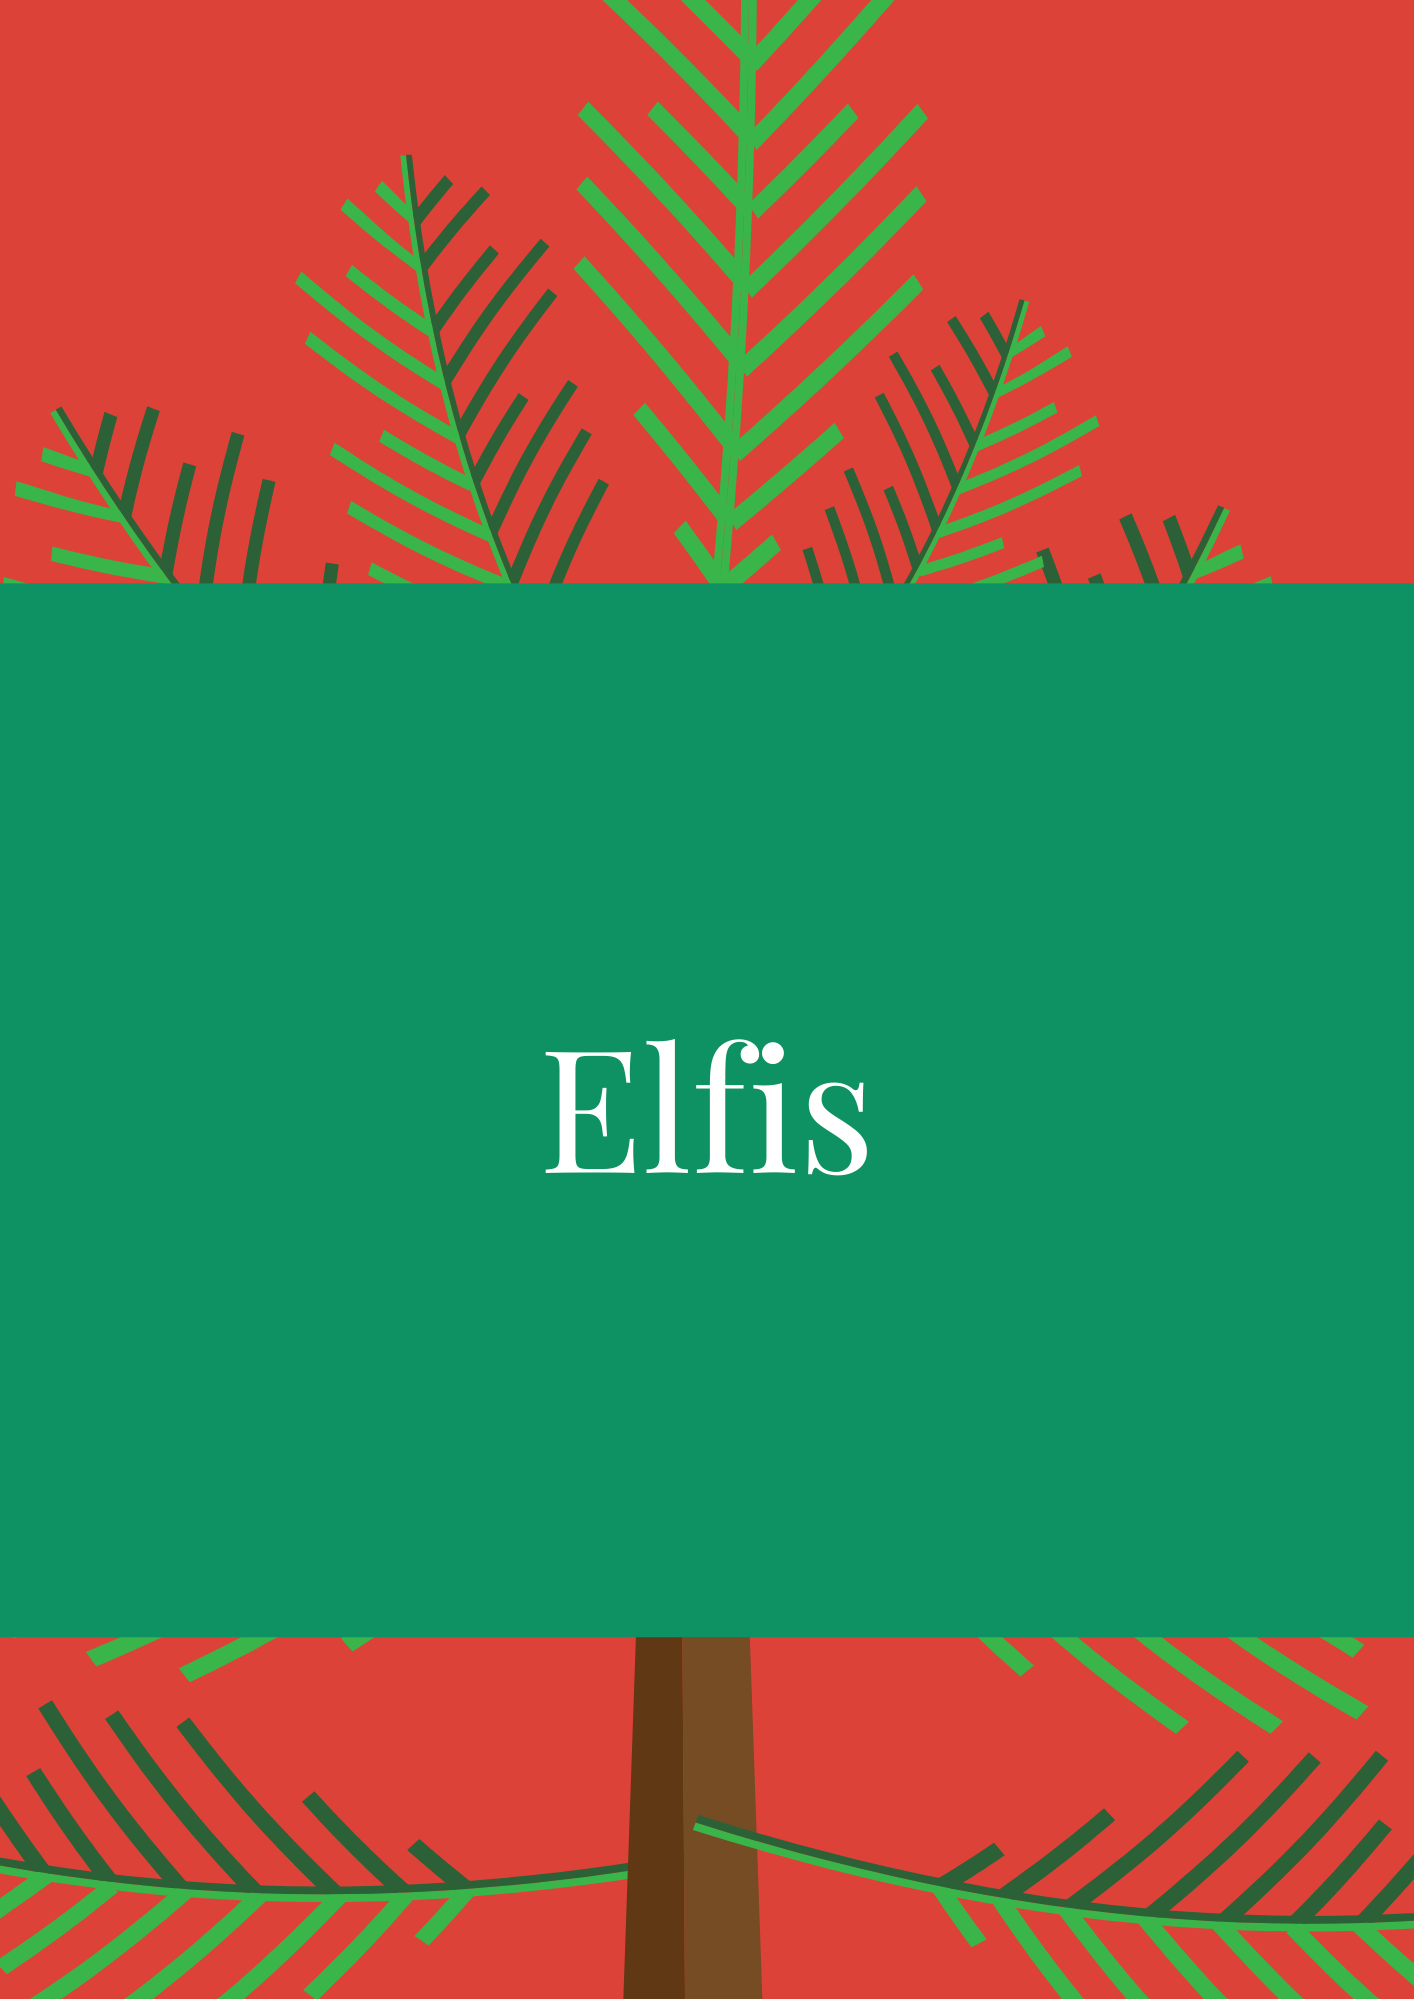 Elfis Elf Names